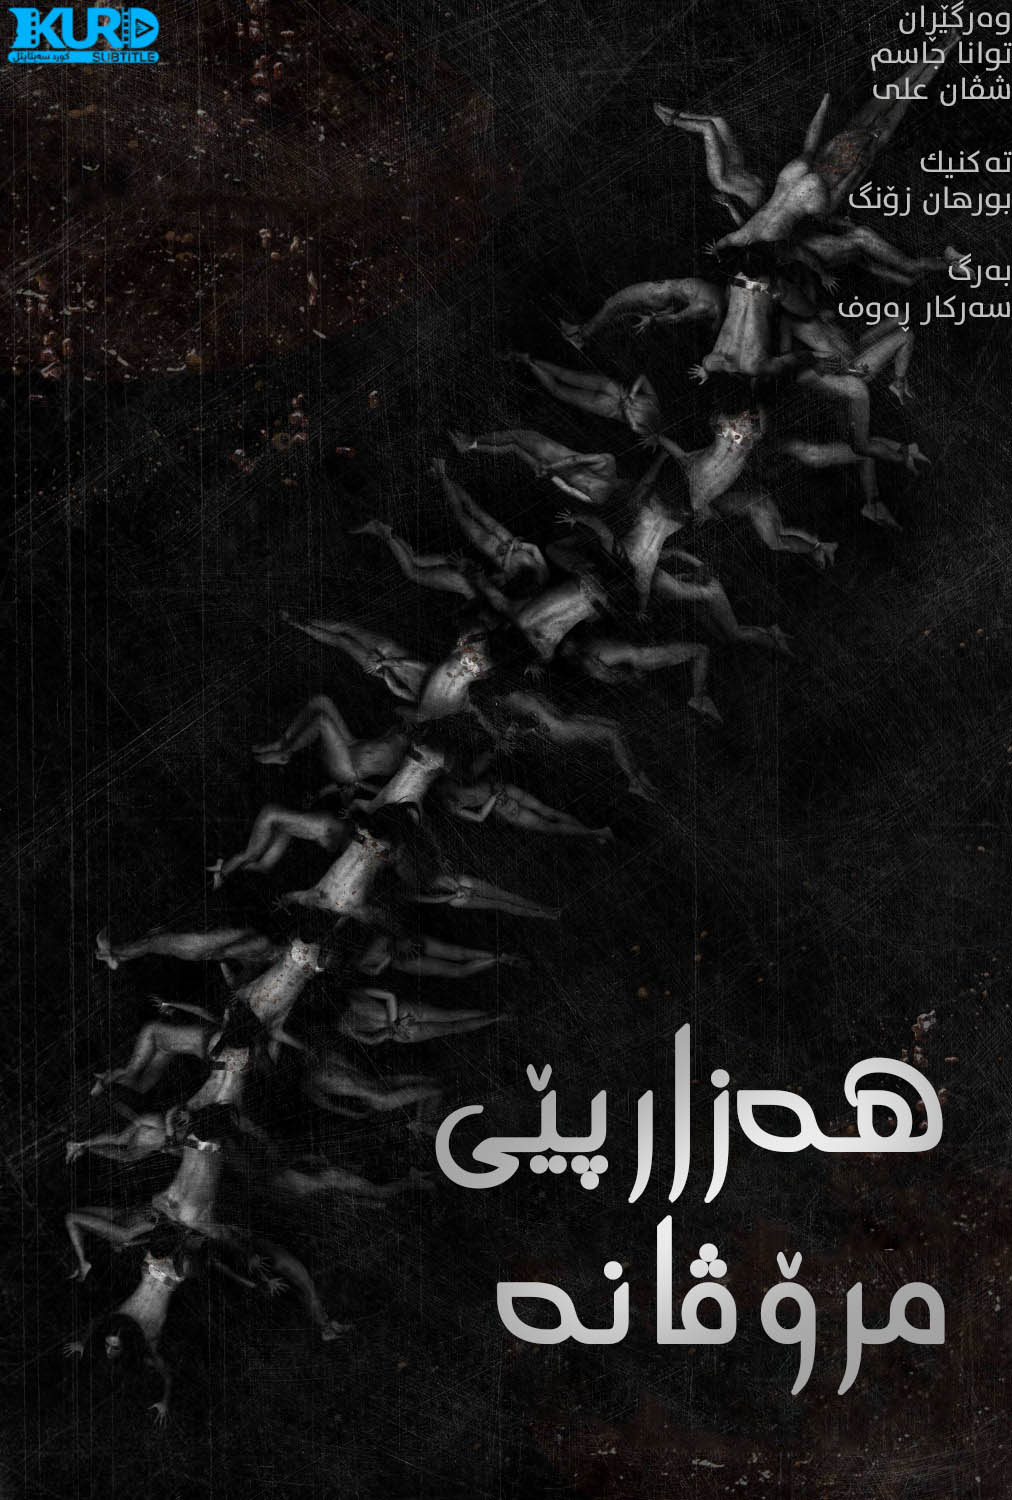 The Human Centipede 2 (Full Sequence) kurdish poster